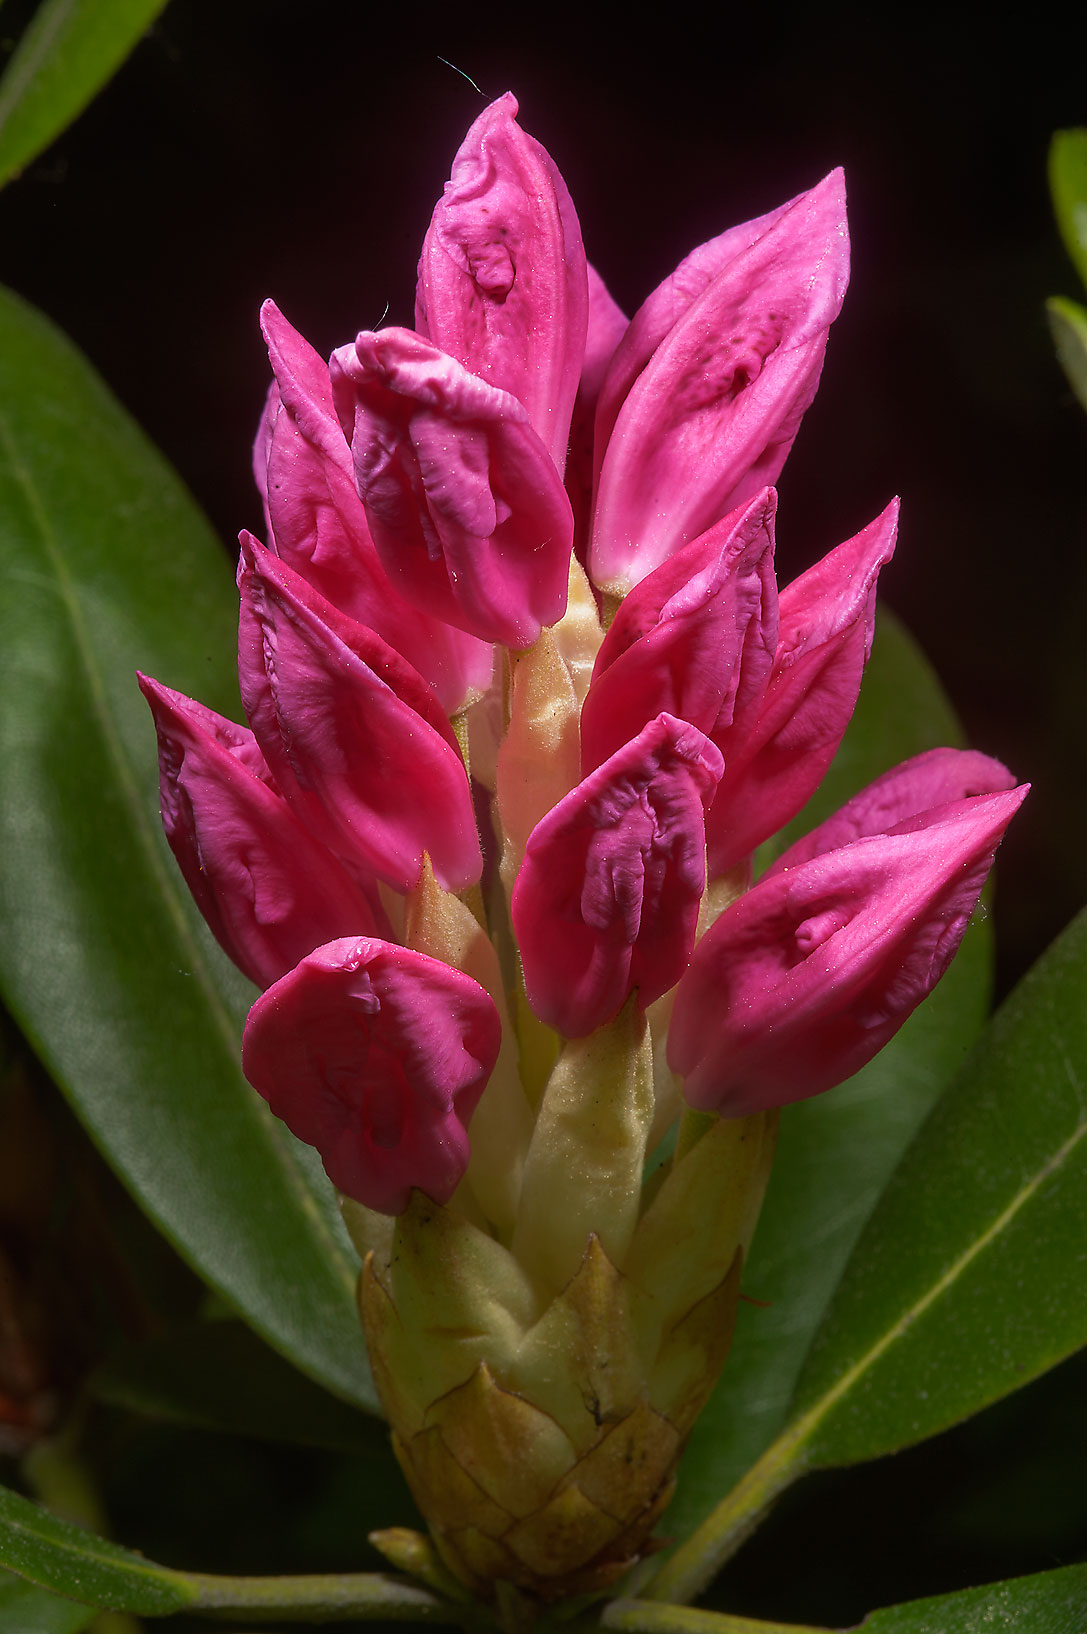 Flower buds of Rhododendron makinoi in Botanic...Institute. St.Petersburg, Russia